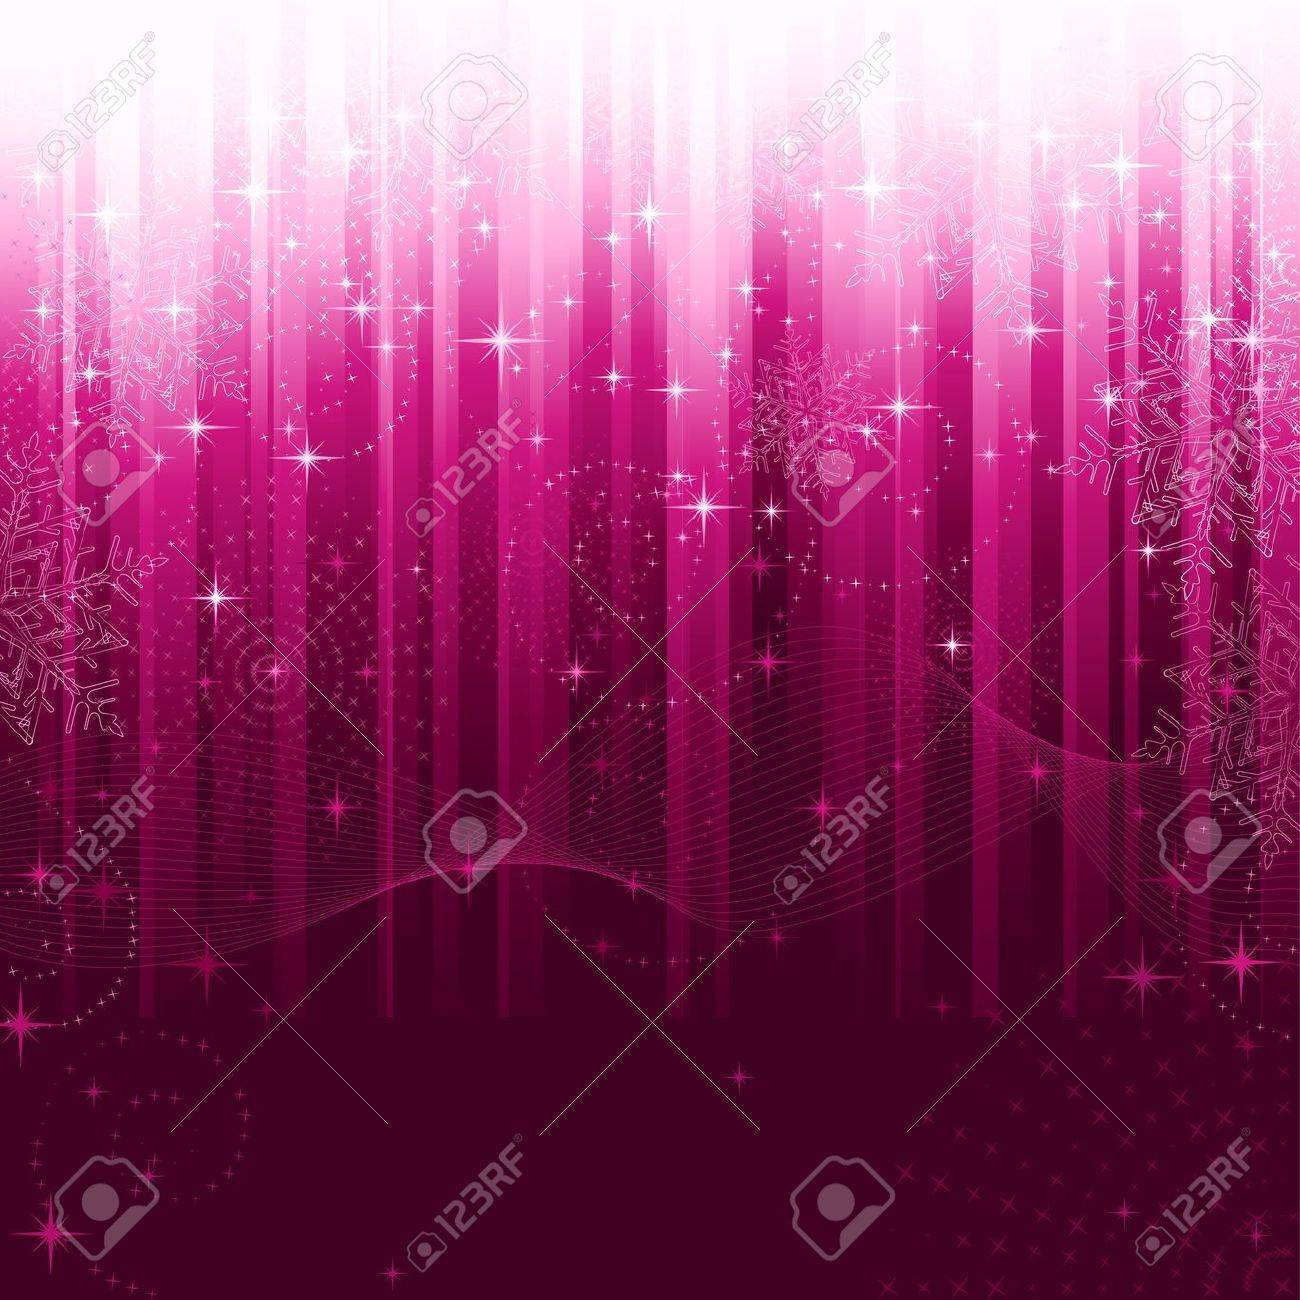 Stars, swirls, snowflakes and wavy lines on purple striped background. A pattern great for festive occasions or christmas themes. Stock Vector - 8361509